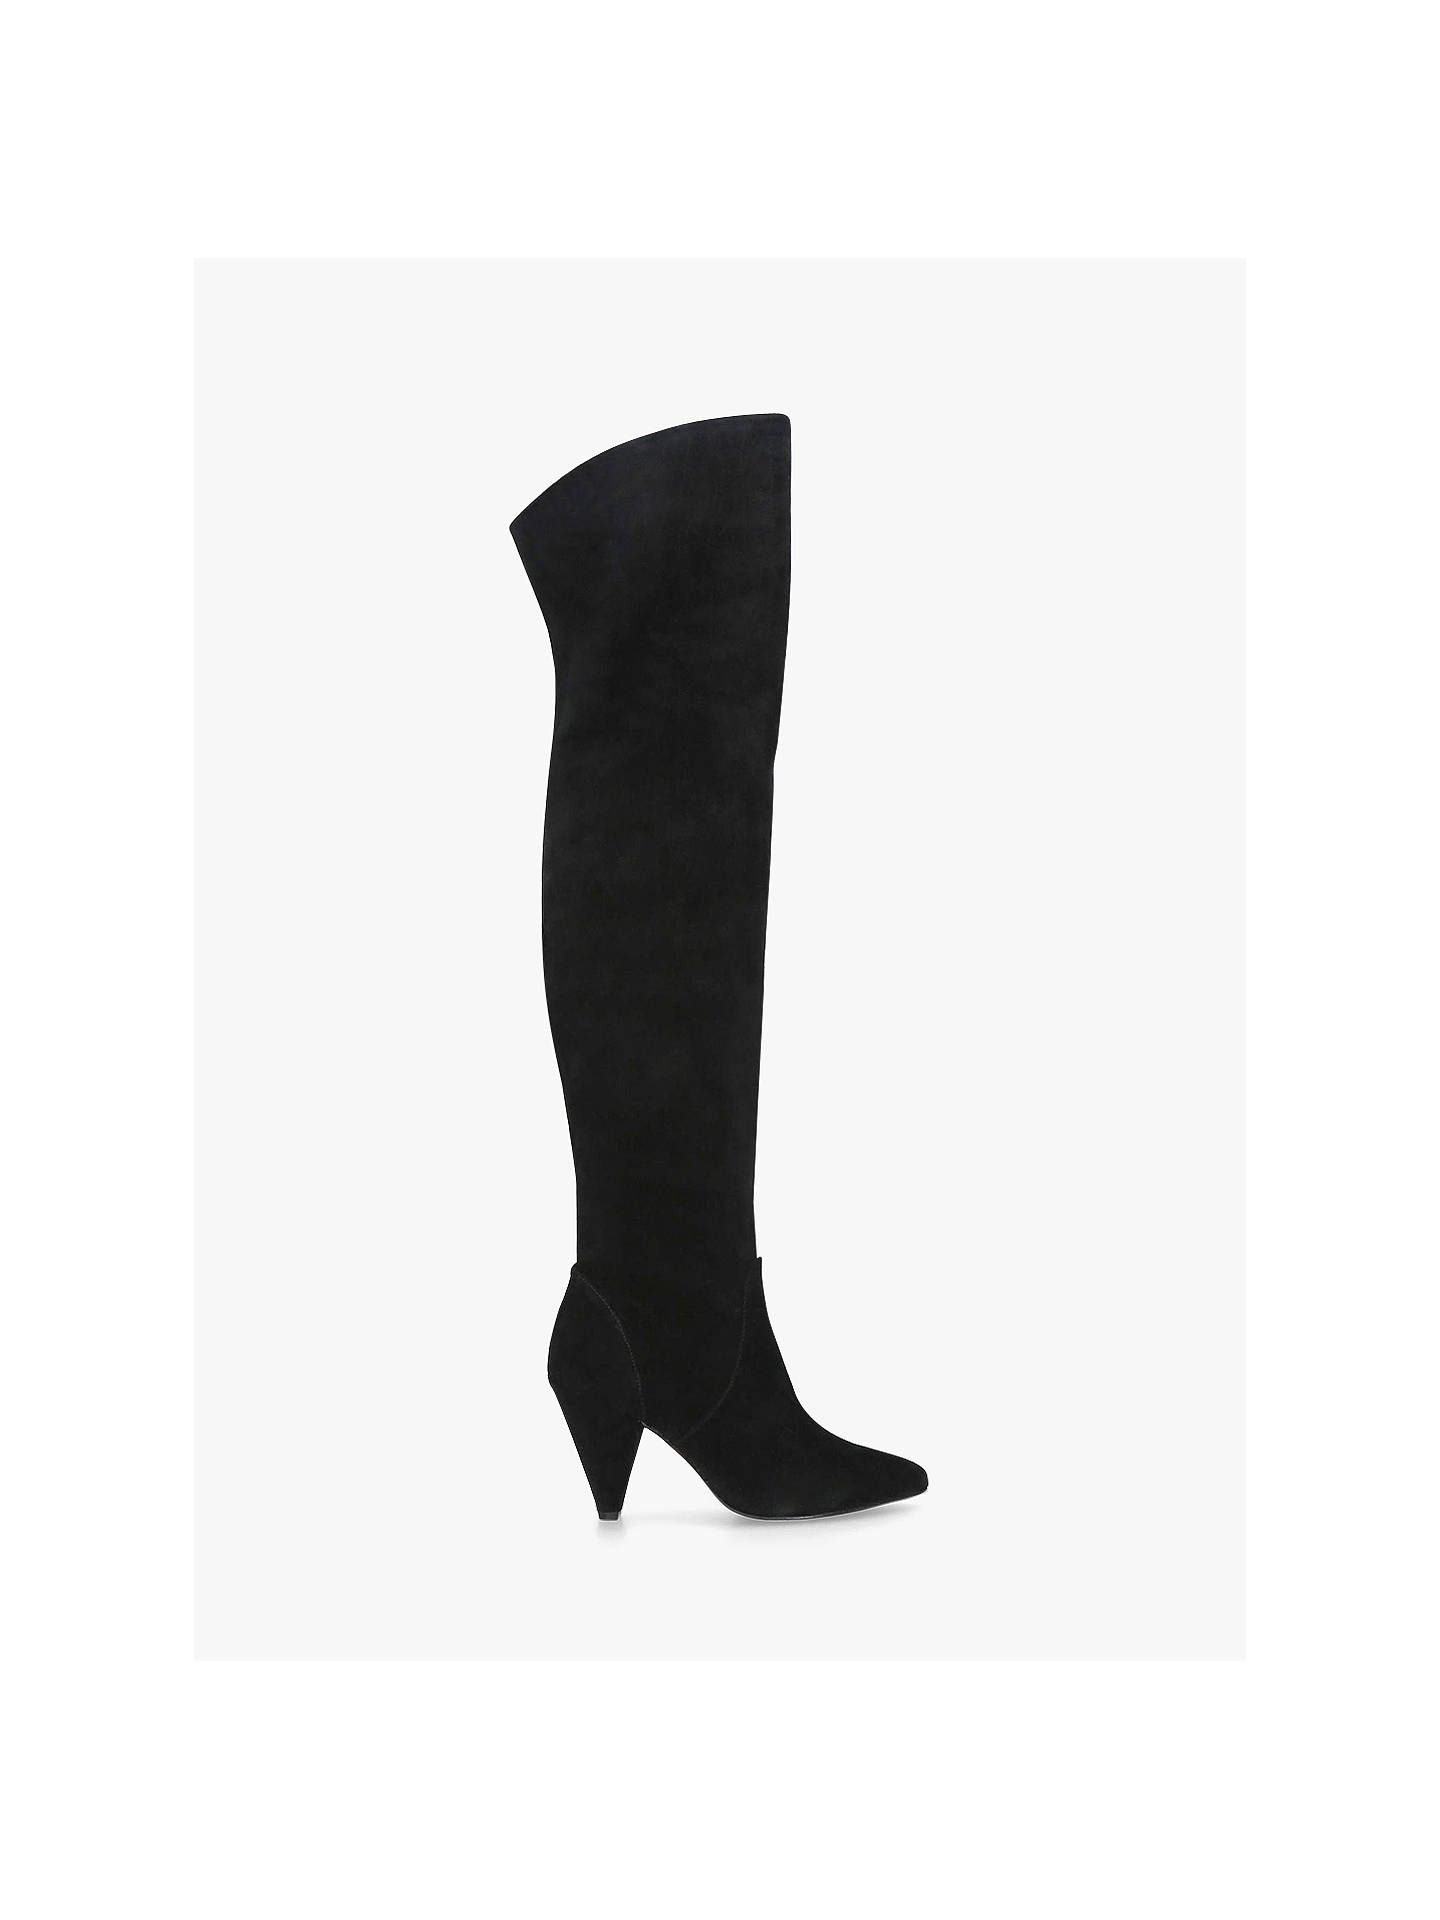 df76e5b58fc Kurt Geiger London Violet Over the Knee Boots at John Lewis & Partners